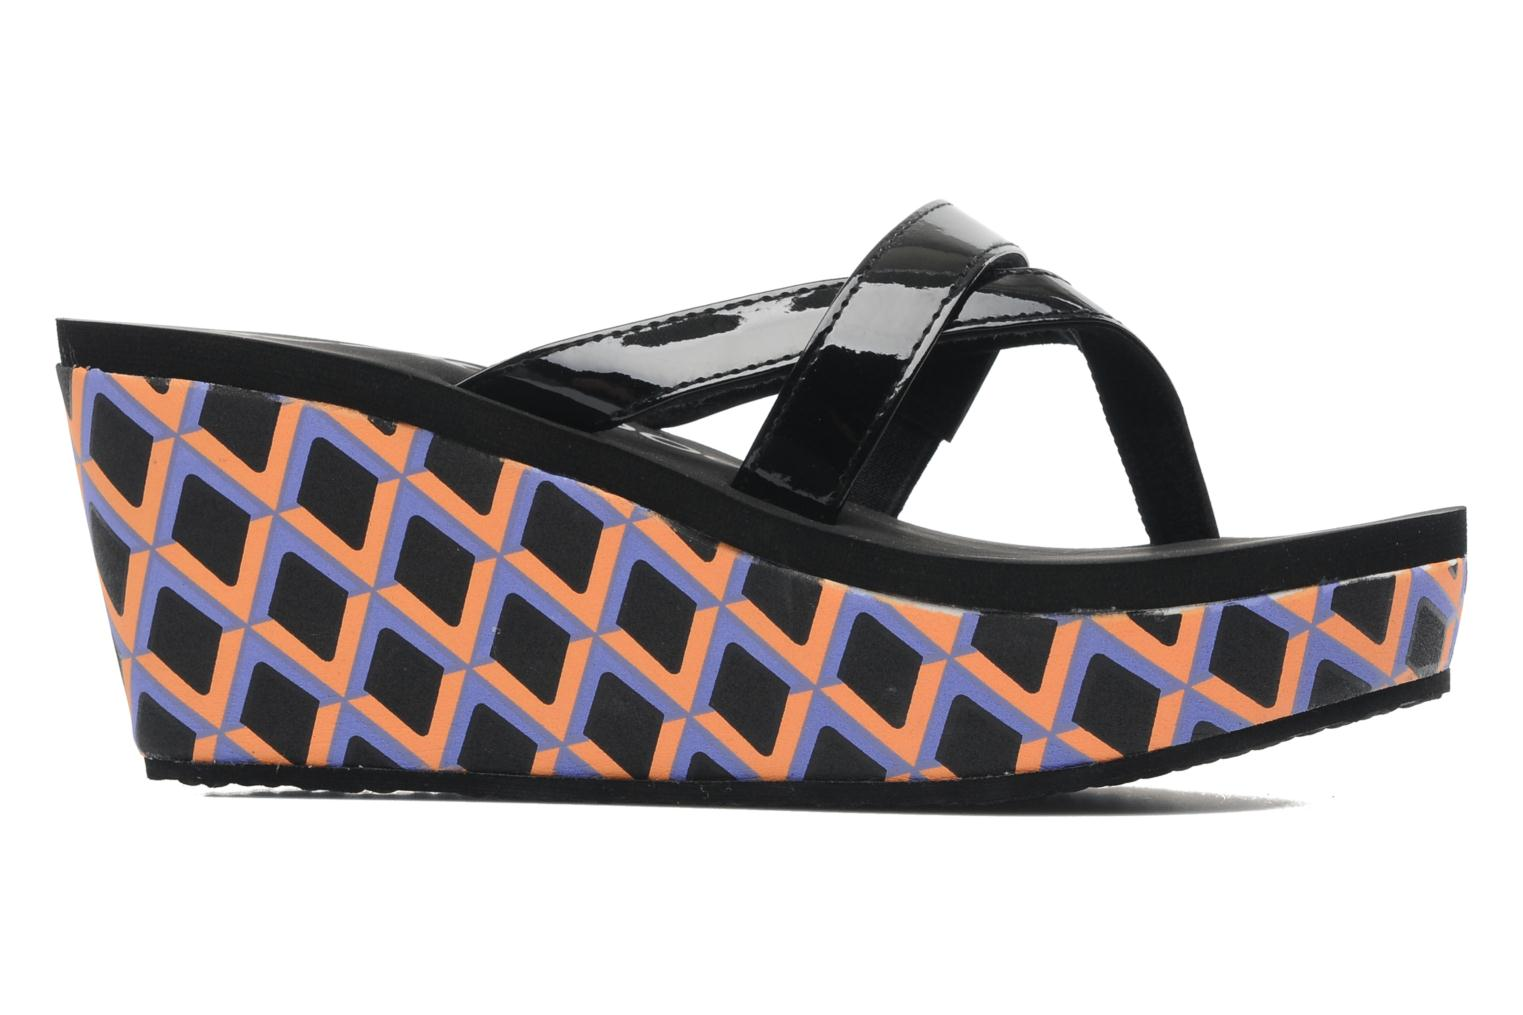 Deflina summer patent PU black/orange